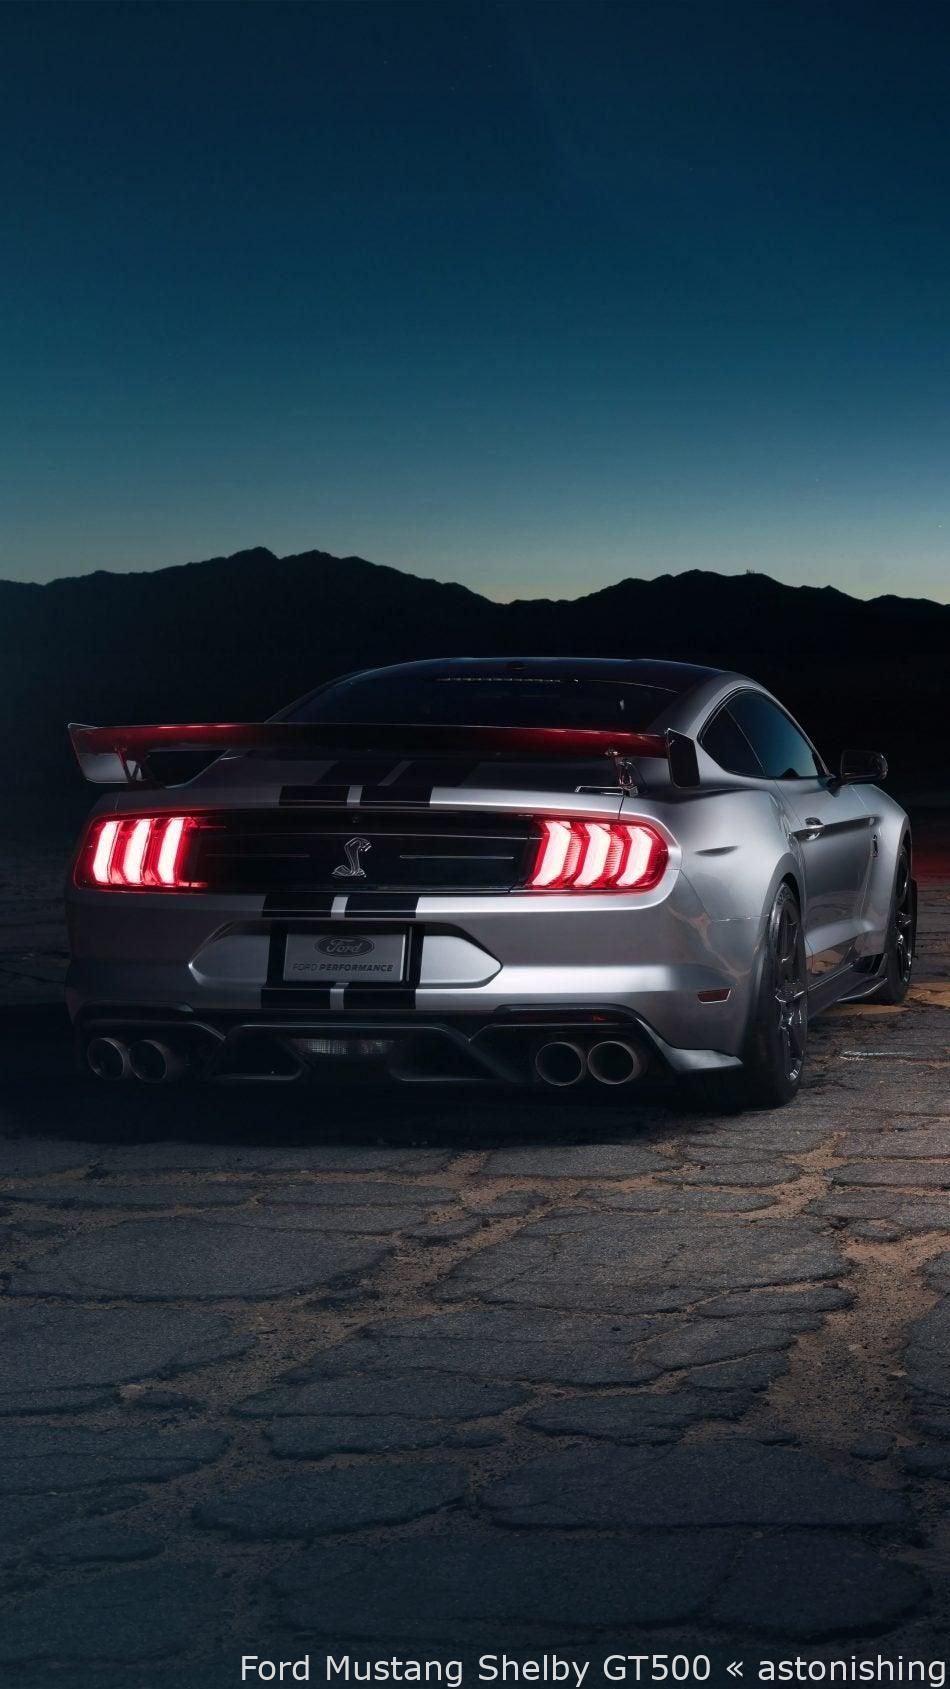 Ford Mustang Shelby Gt500 Astonishing In 2020 Ford Mustang